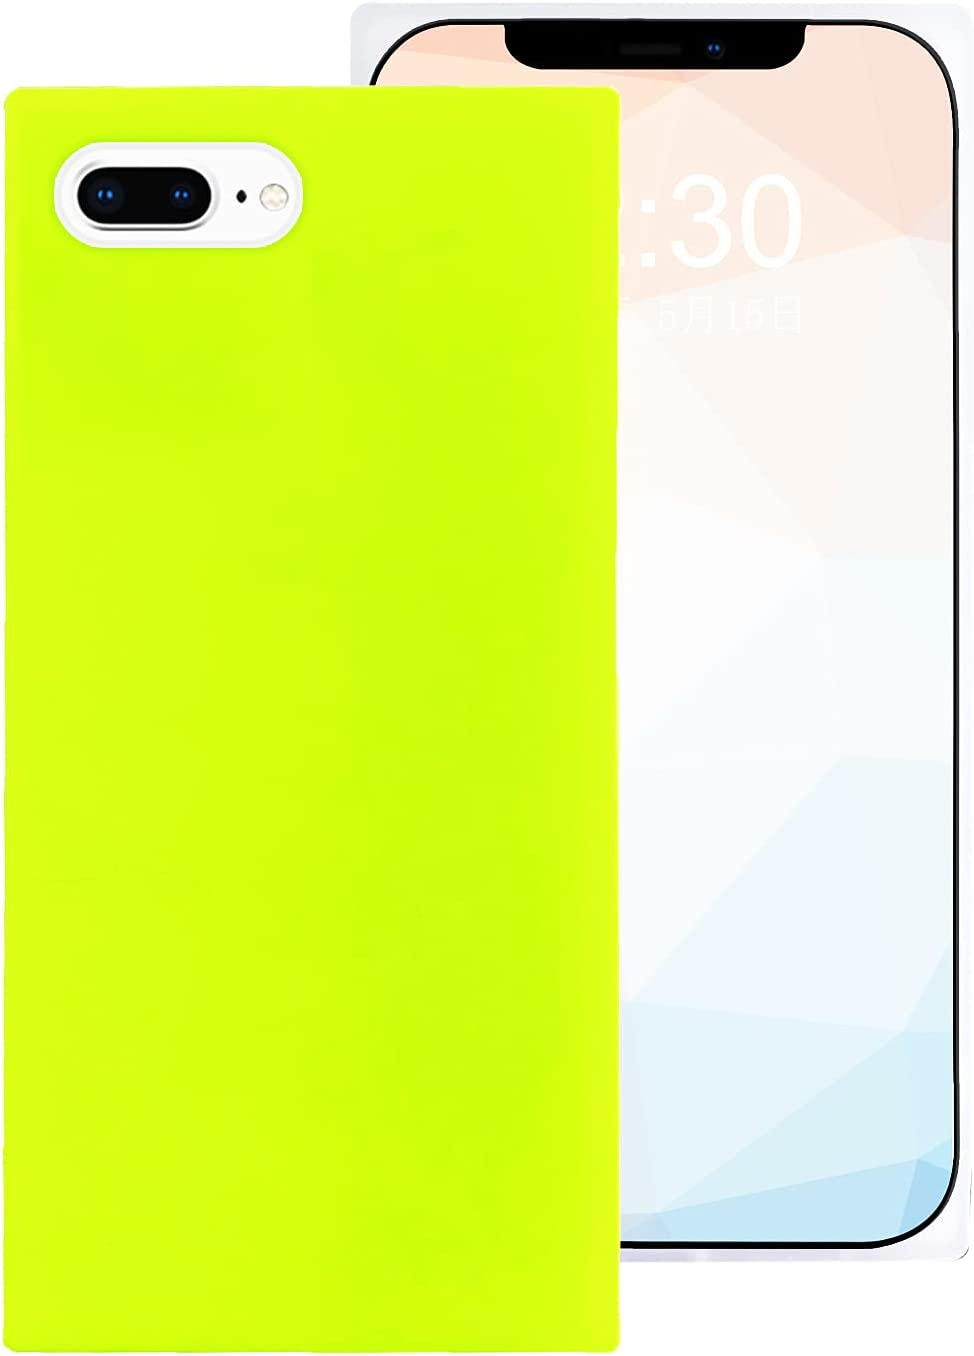 Omorro for iPhone 8 Plus/iPhone 7 Plus Square Edge Neon Phone Case, Cute Fluorescence Color Flexible Soft Slim TPU Rubber Gel Bumper Chic Square Shockproof Protective Girly Case Neon Green